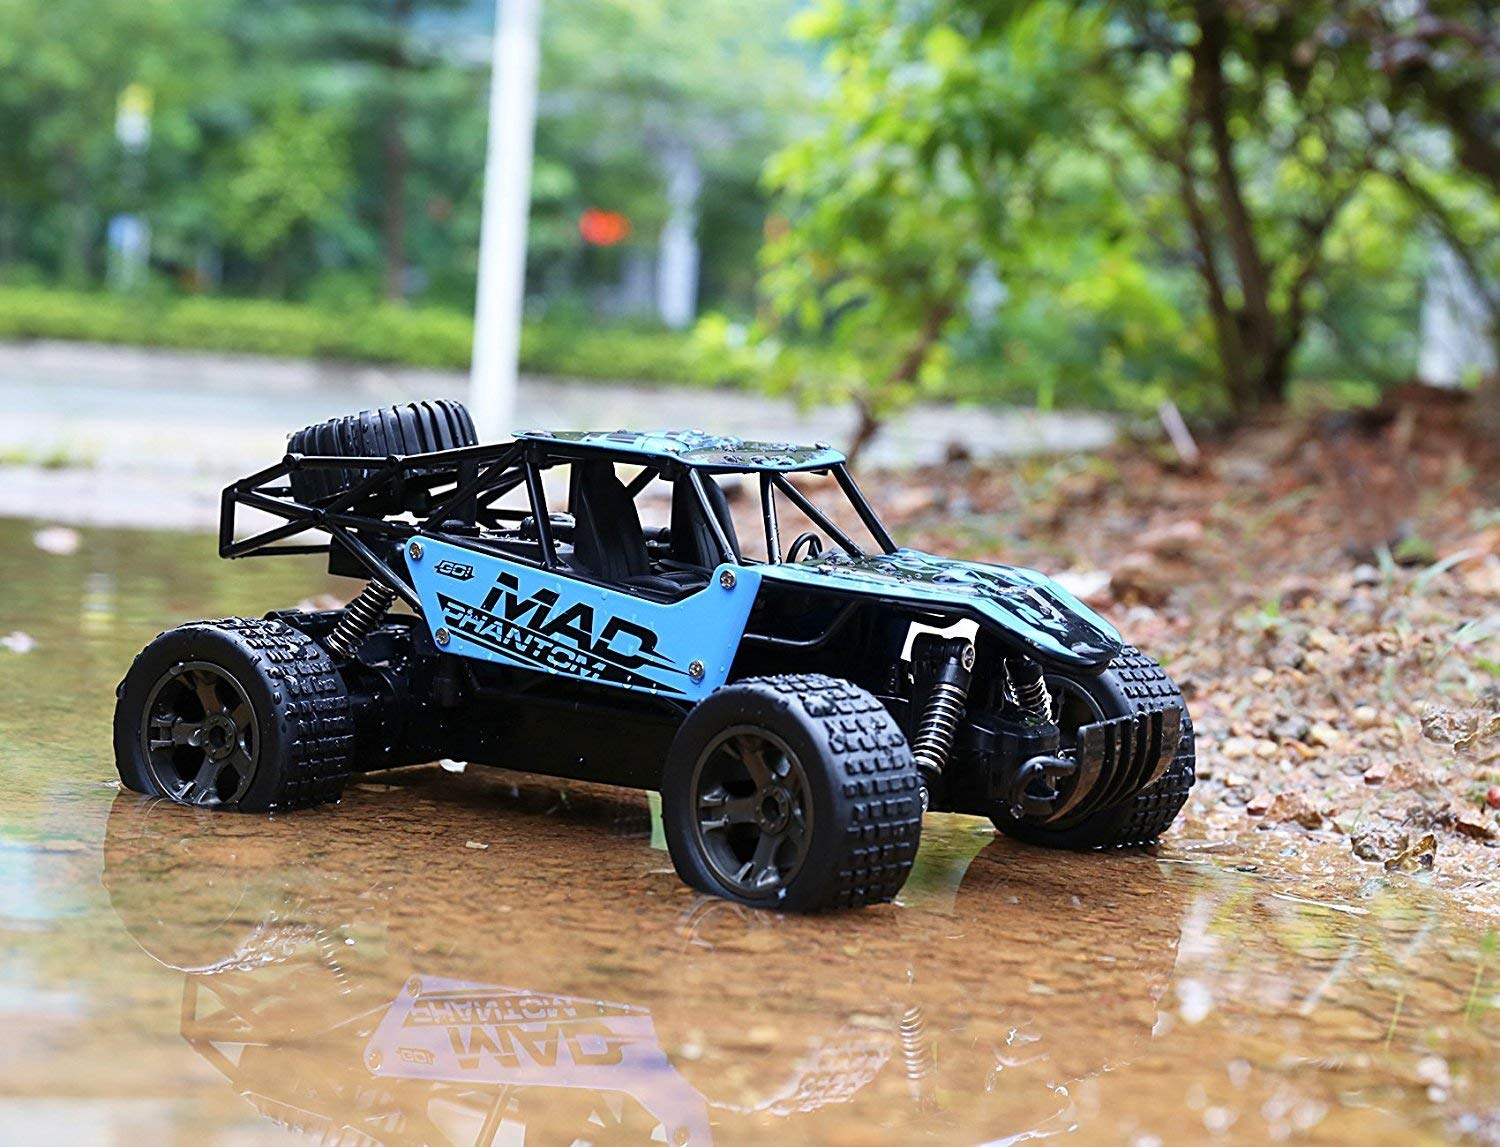 Best Remote Control Cars For 4 Year Old Tncore